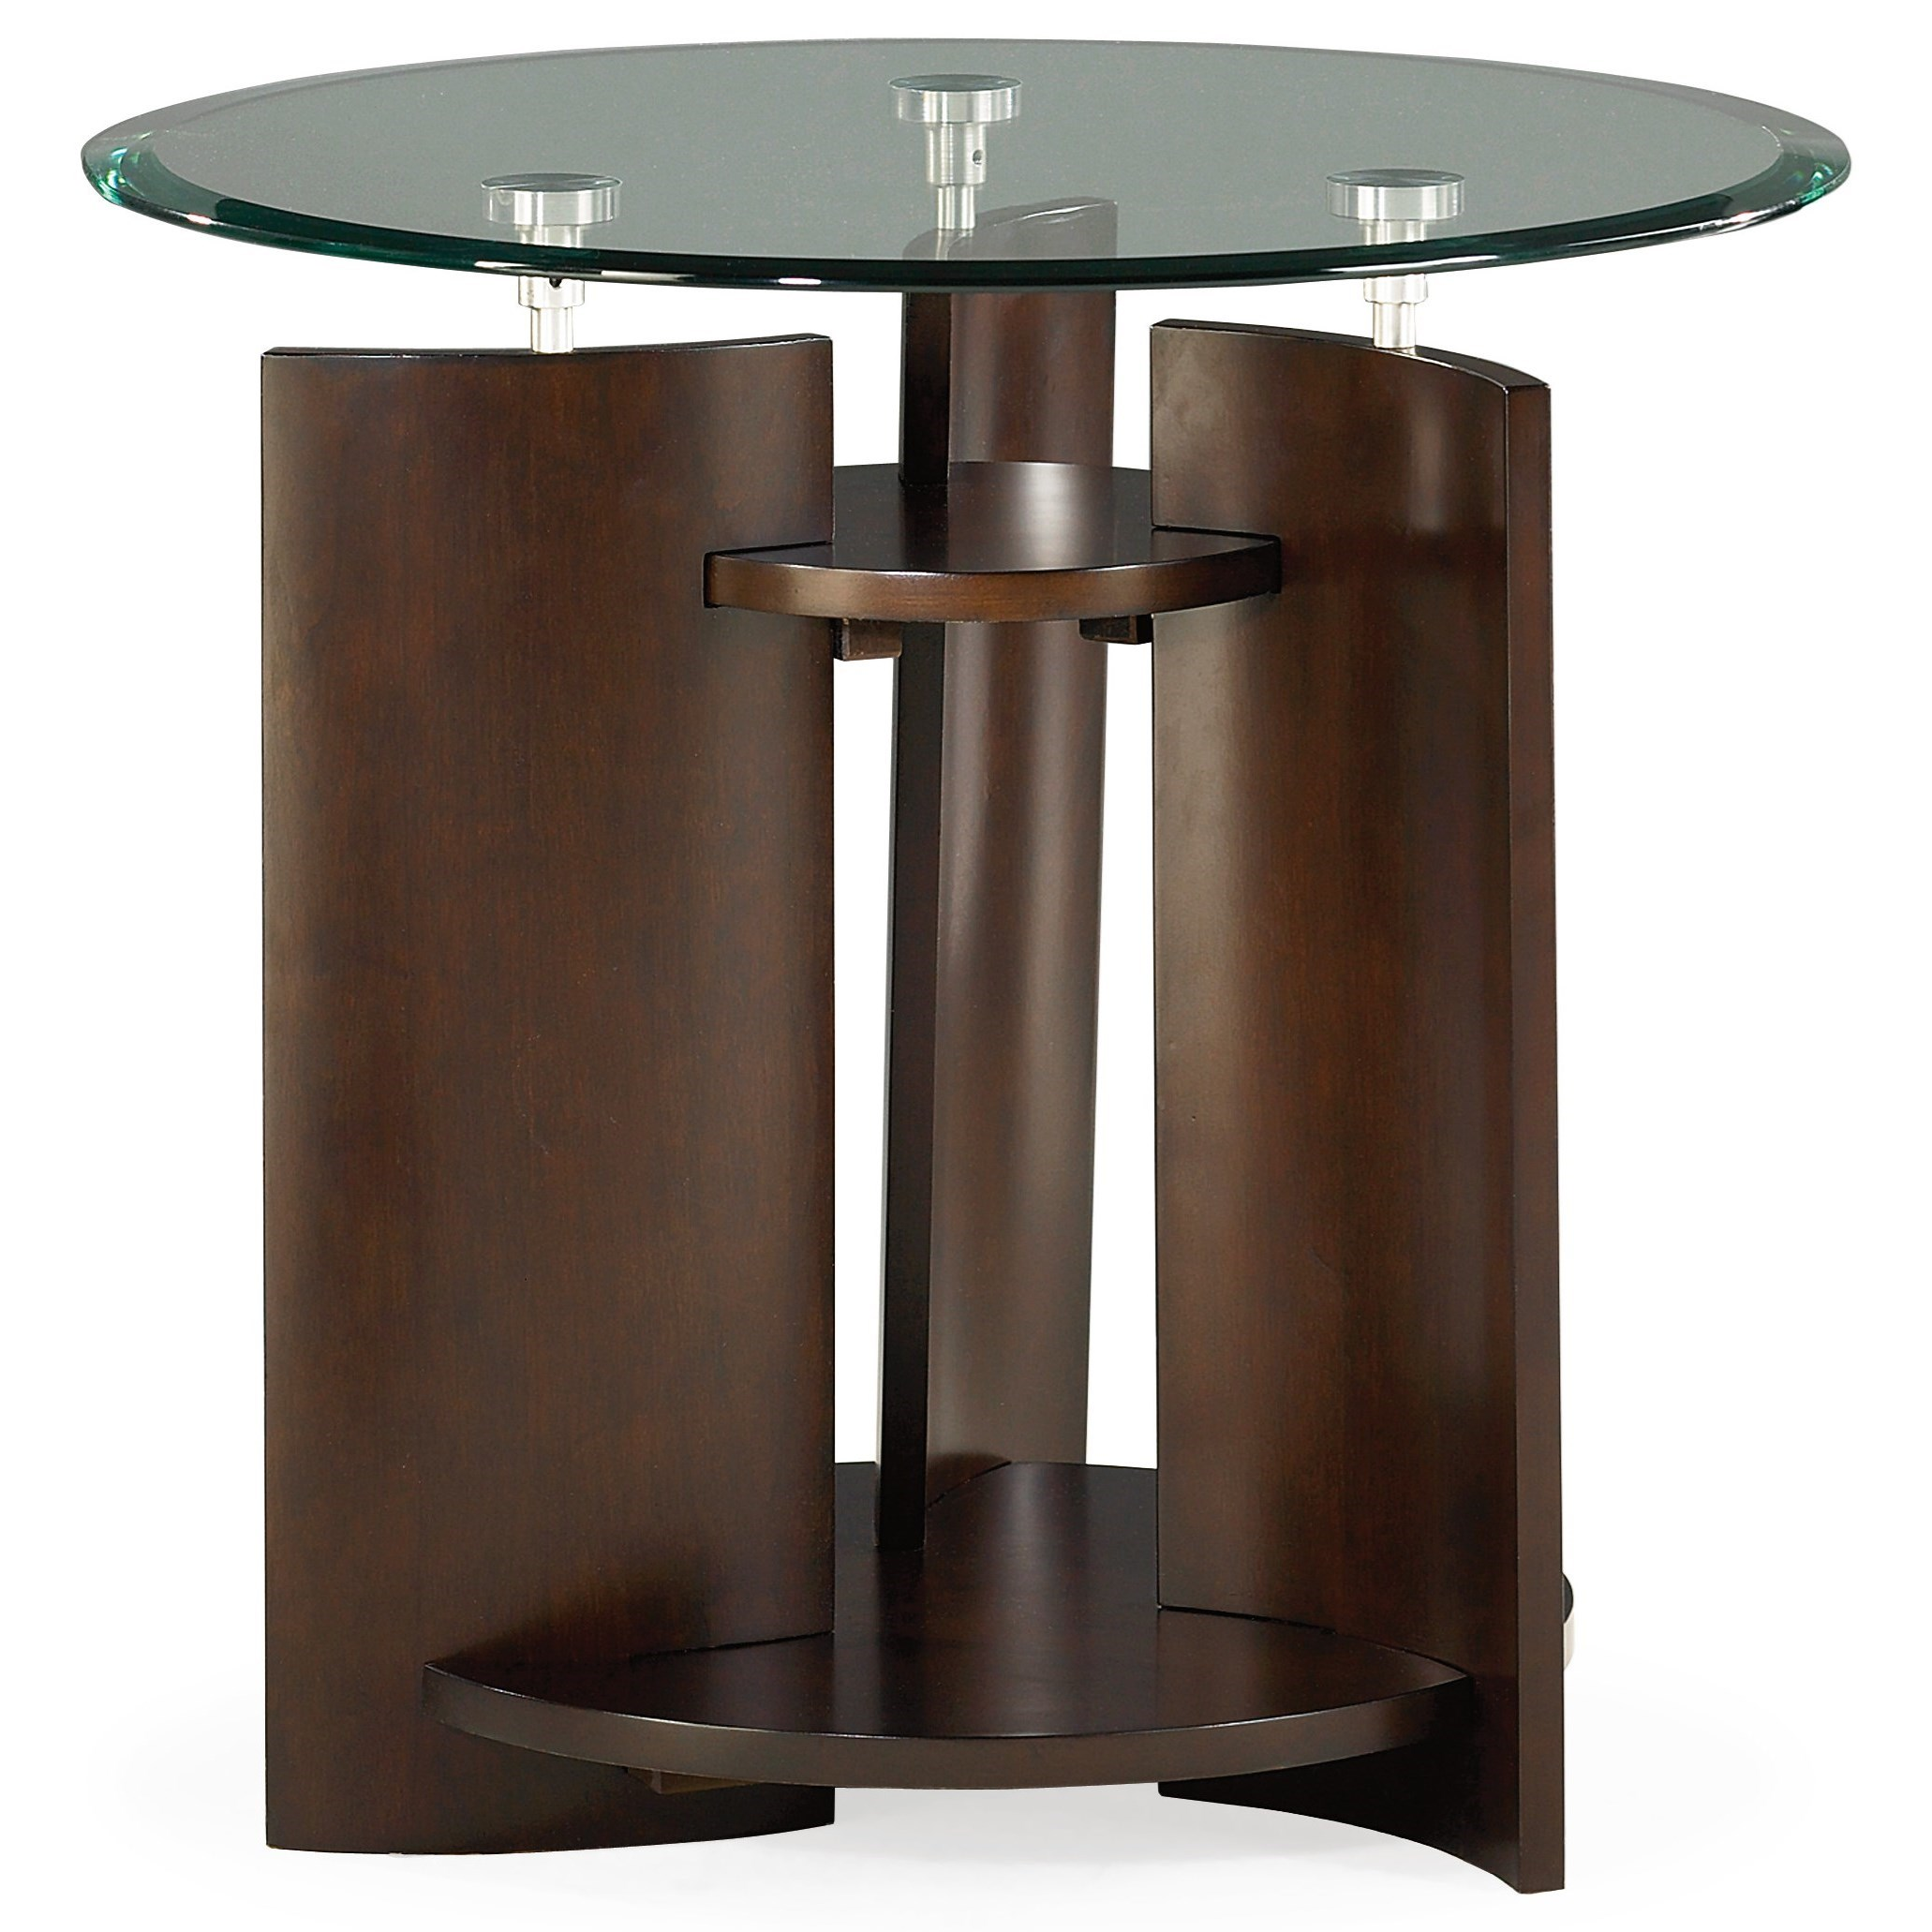 Hammary Apex Round End Table  - Item Number: 105-916